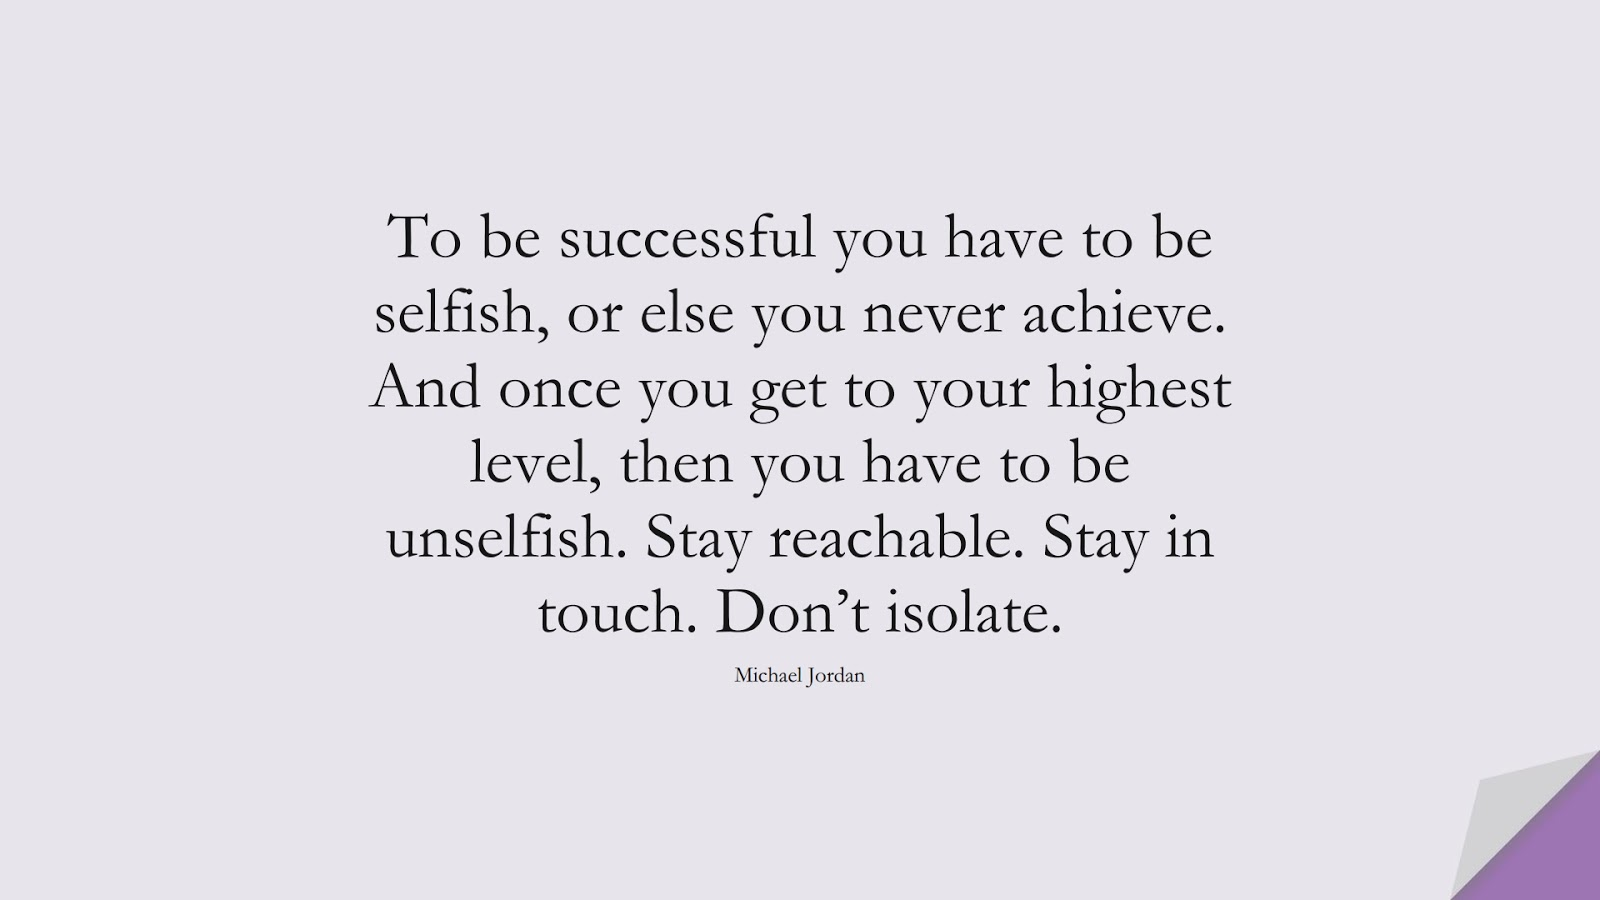 To be successful you have to be selfish, or else you never achieve. And once you get to your highest level, then you have to be unselfish. Stay reachable. Stay in touch. Don't isolate. (Michael Jordan);  #FamousQuotes